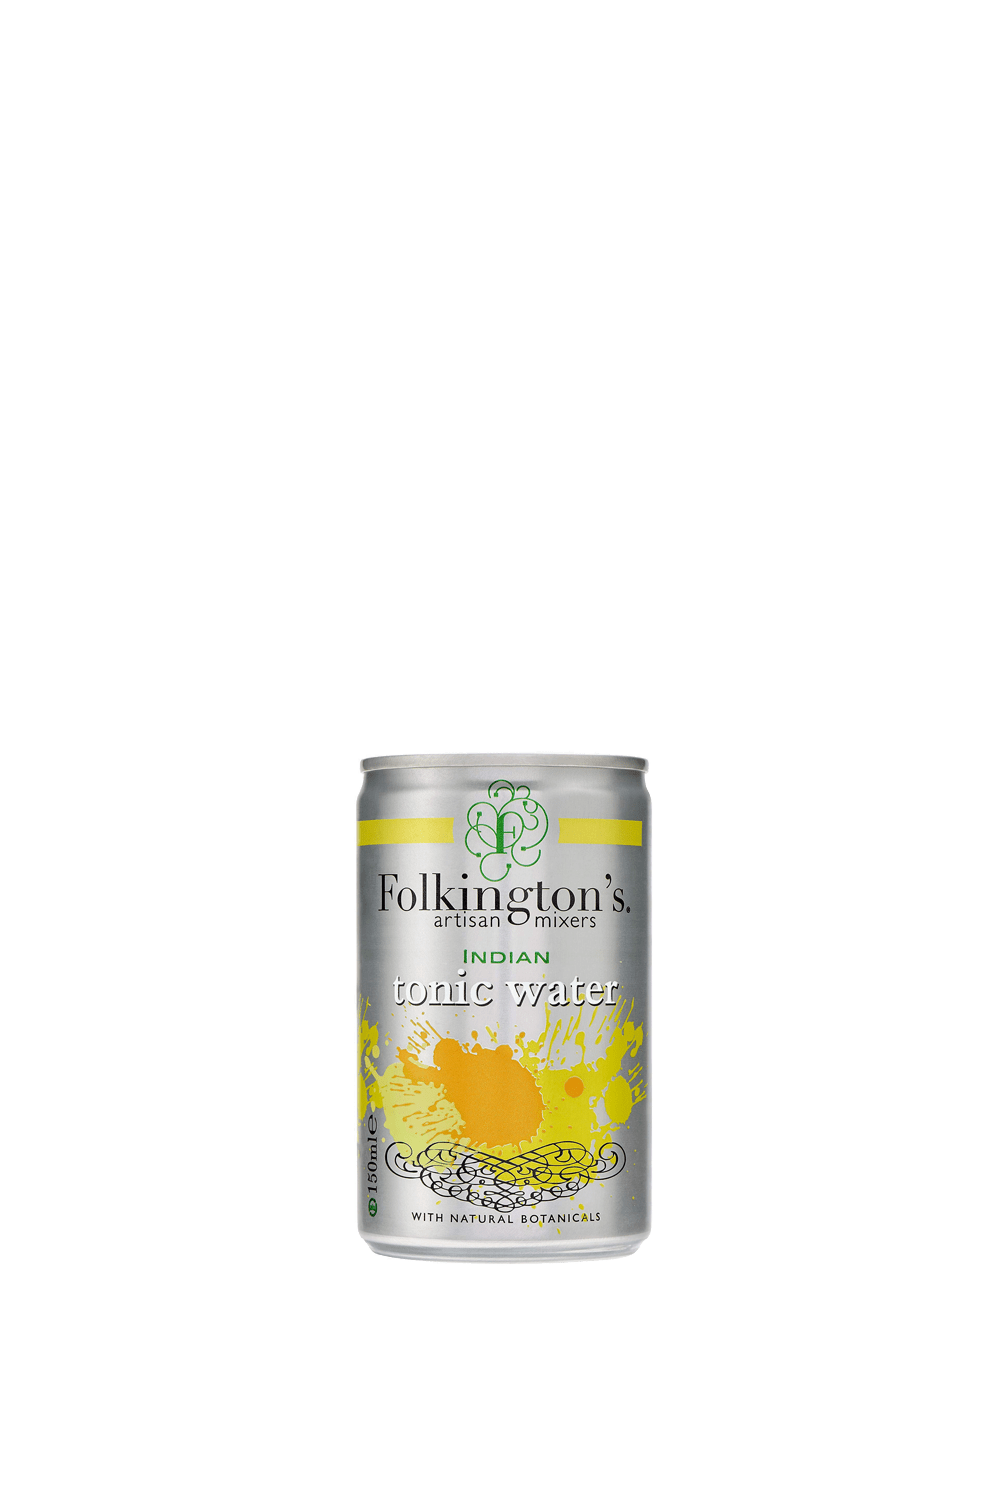 Folkingtons Indian Tonic Water